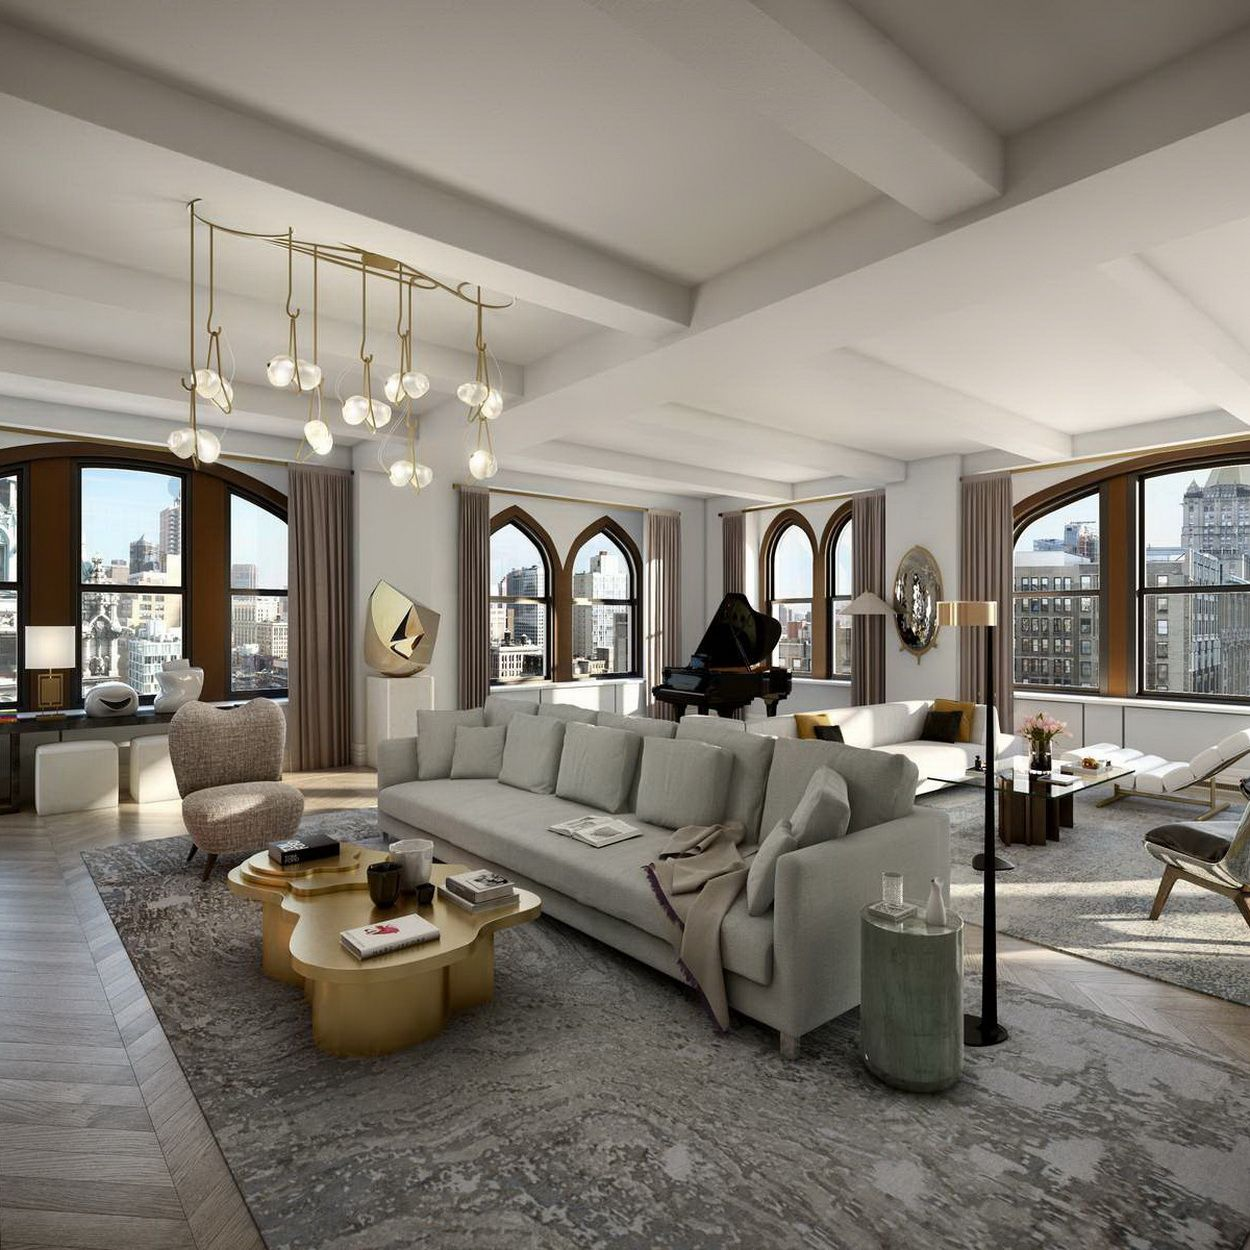 A historic masterpiece of its time the crown penthouse at 212 fifth avenue is in a class of its own and the most magnificent trophy residence on